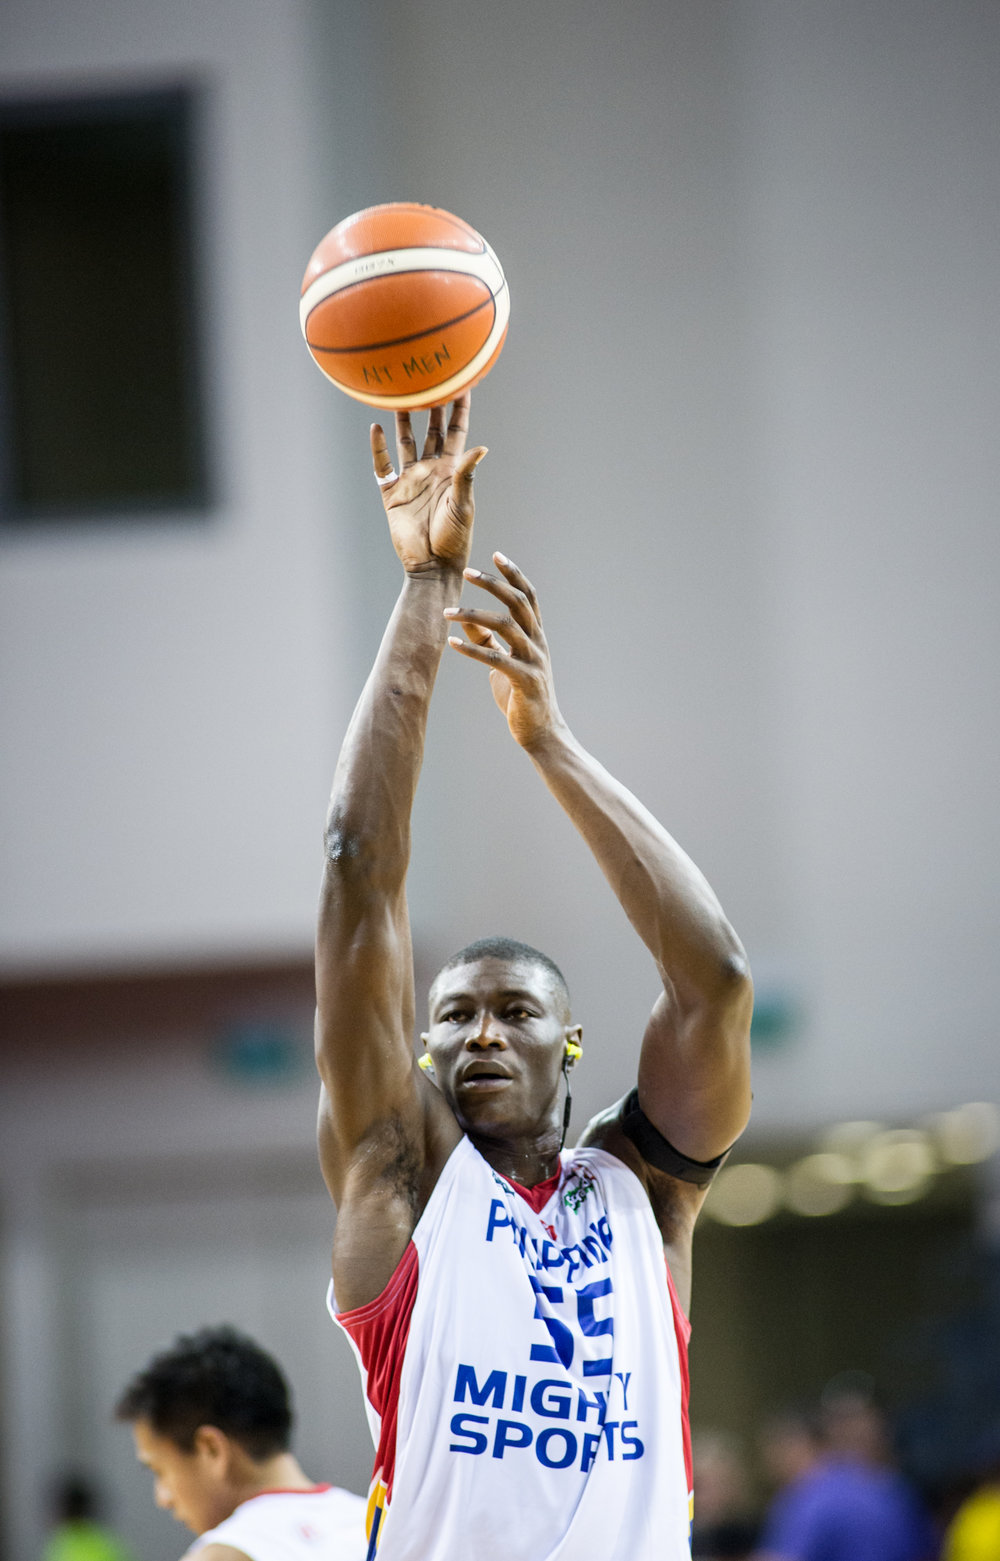 A Phillipines player takes a shot in warm up during the Merlion Cup basketball competition at the OCBC Arena.